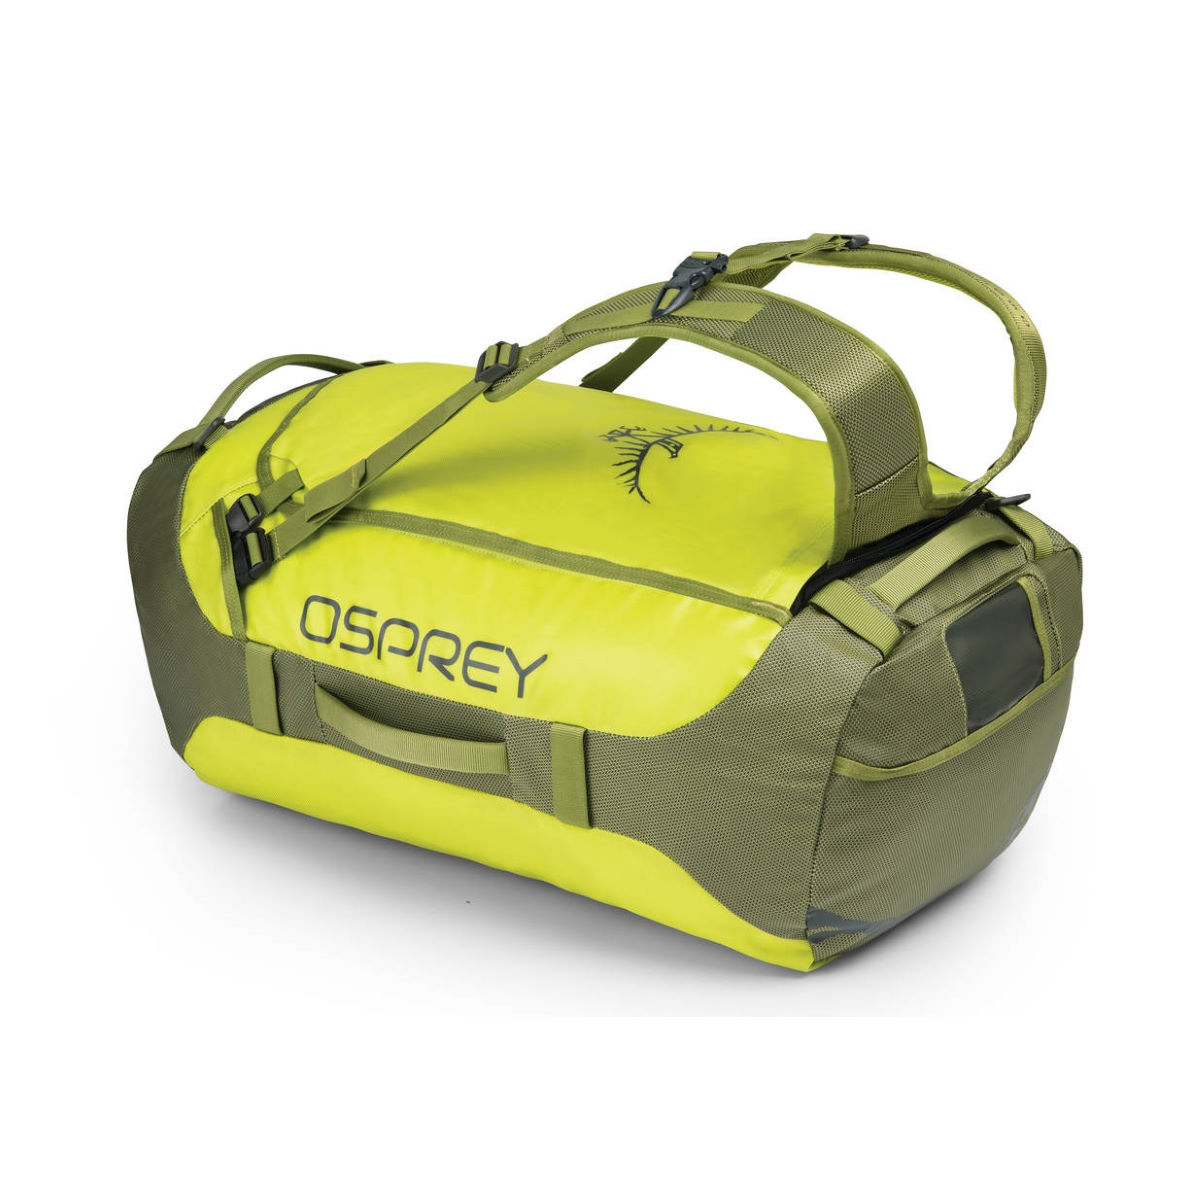 Sac Osprey Transporter 65 Holdall - Taille unique Lime